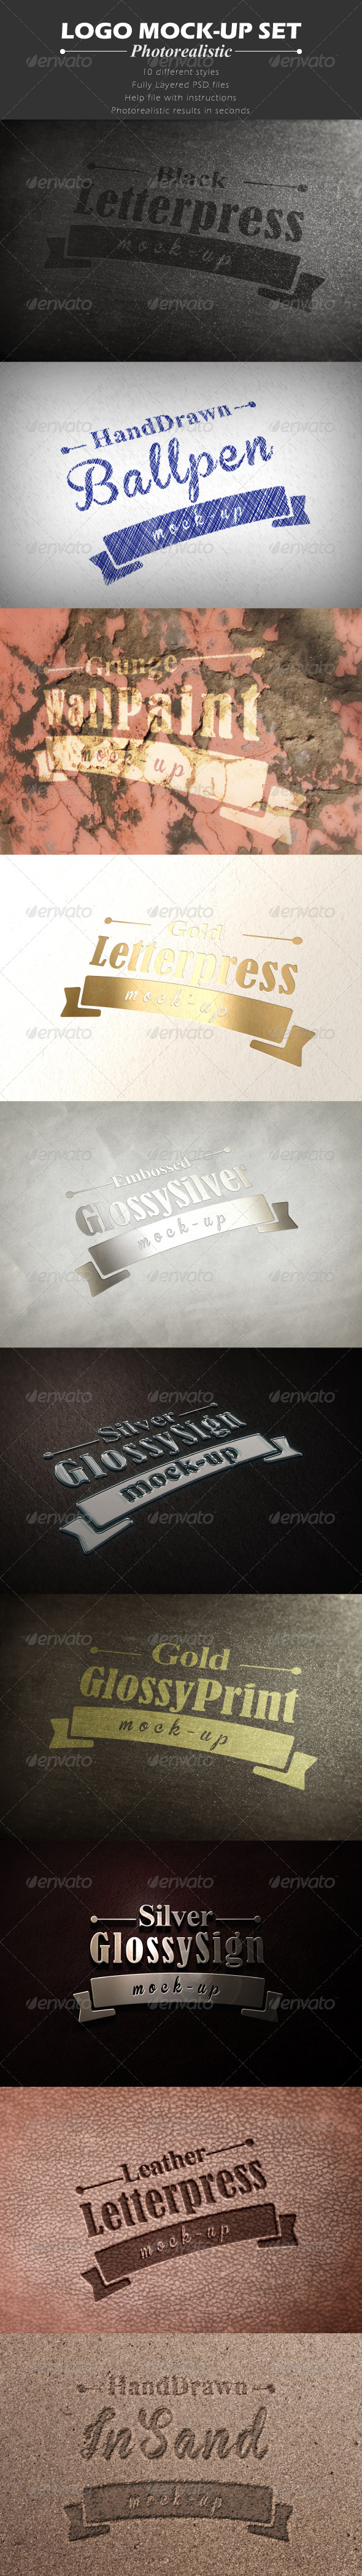 Set of 10 Logo Mock-ups - Logo Product Mock-Ups